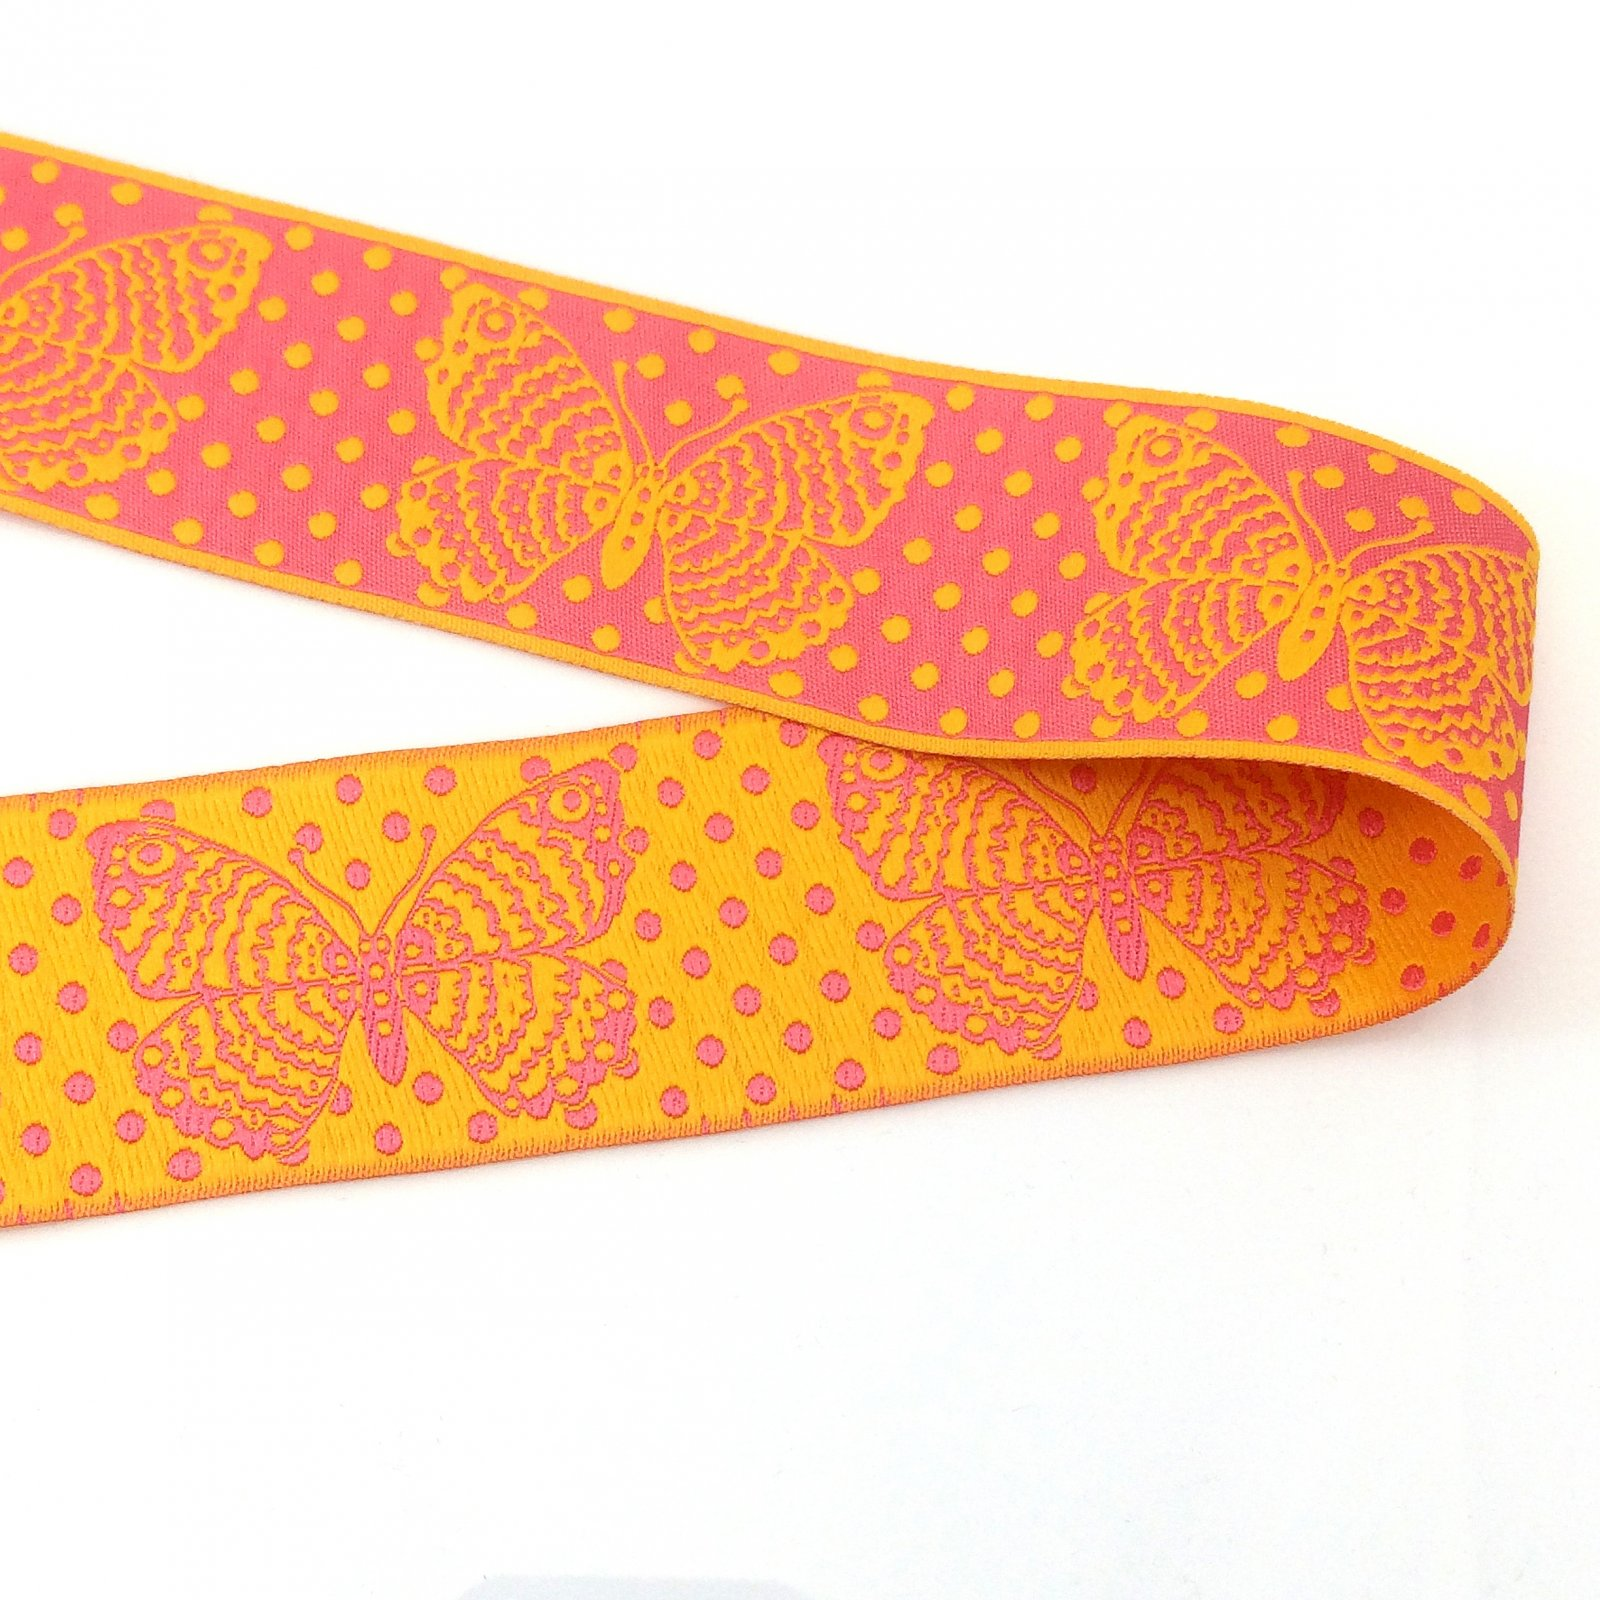 RENAISSANCE RIBBONS - BUTTERFLY - YELLOW ON PINK